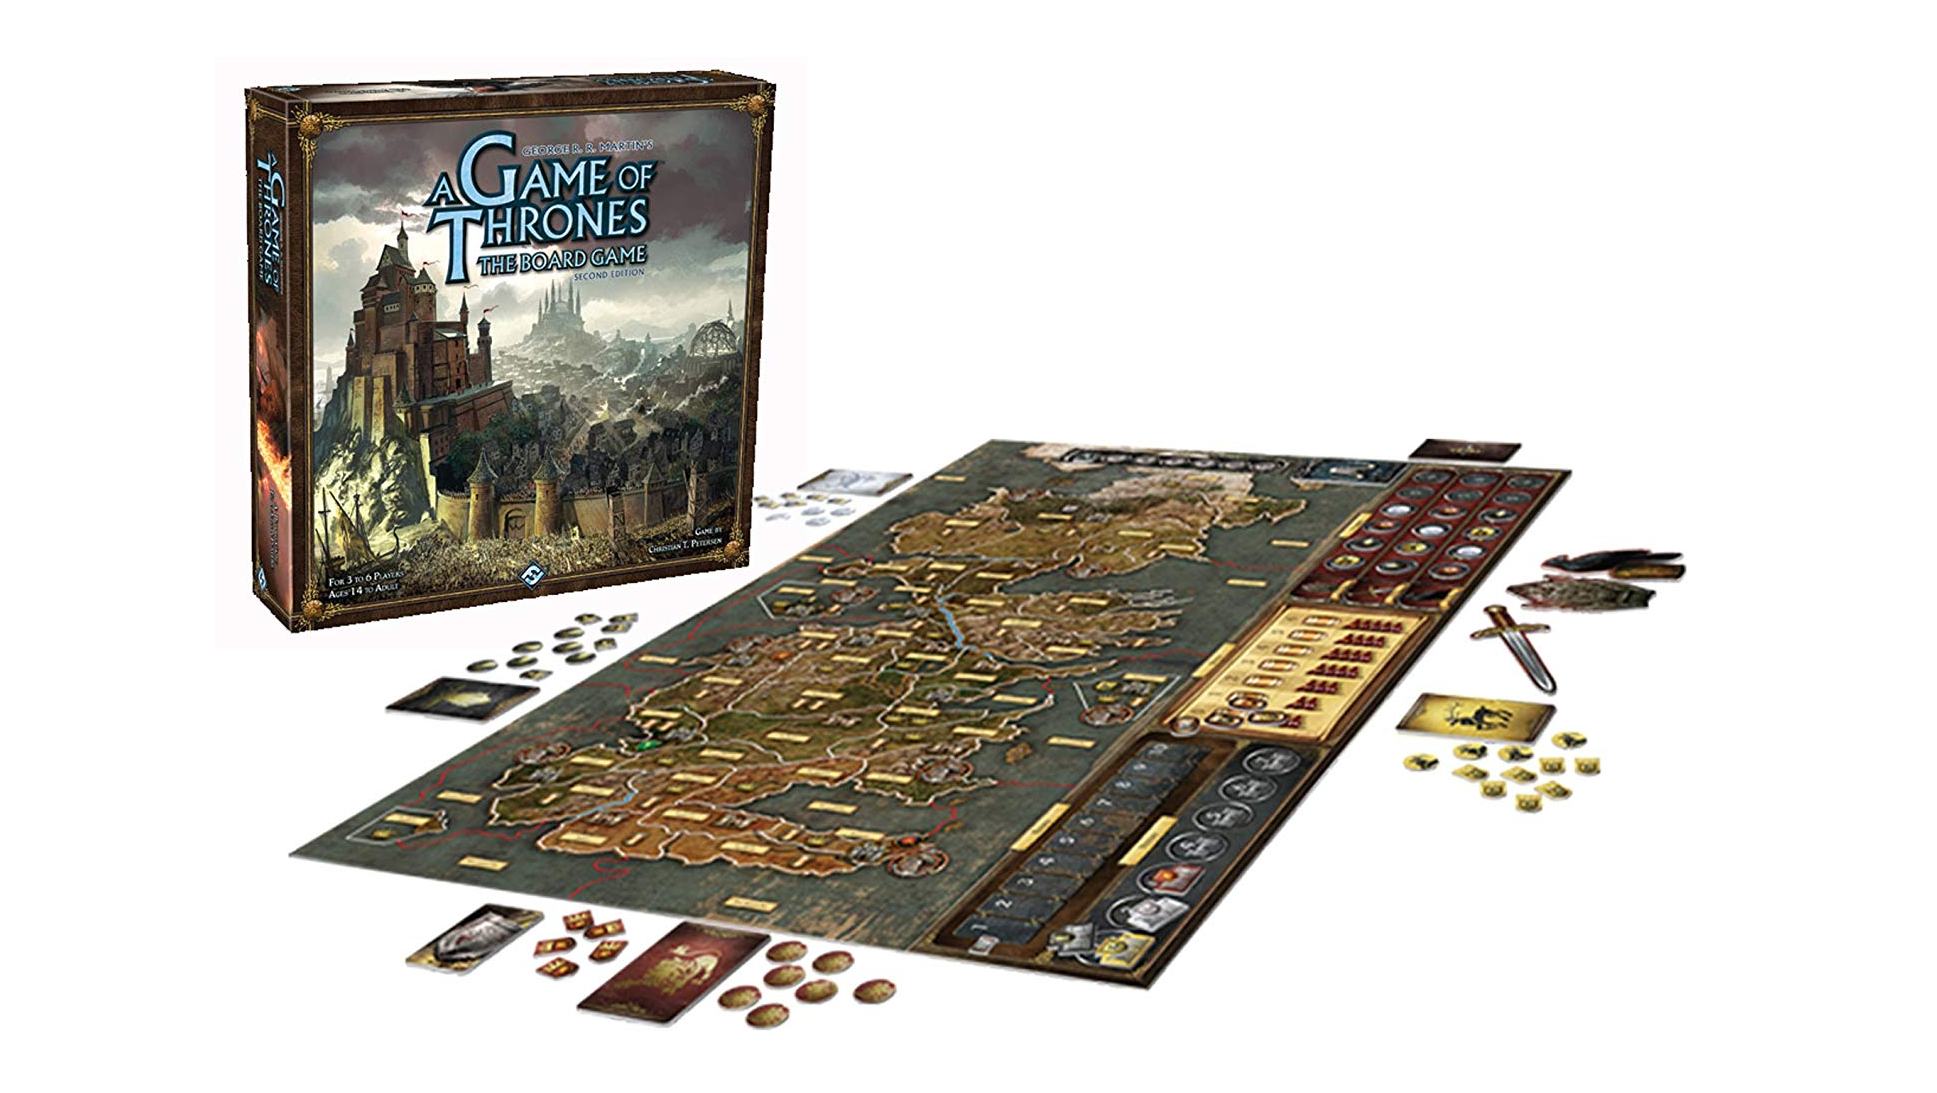 Travel to Westeros in A Game of Thrones: The Board Game for $48 (Reg. up to $60)